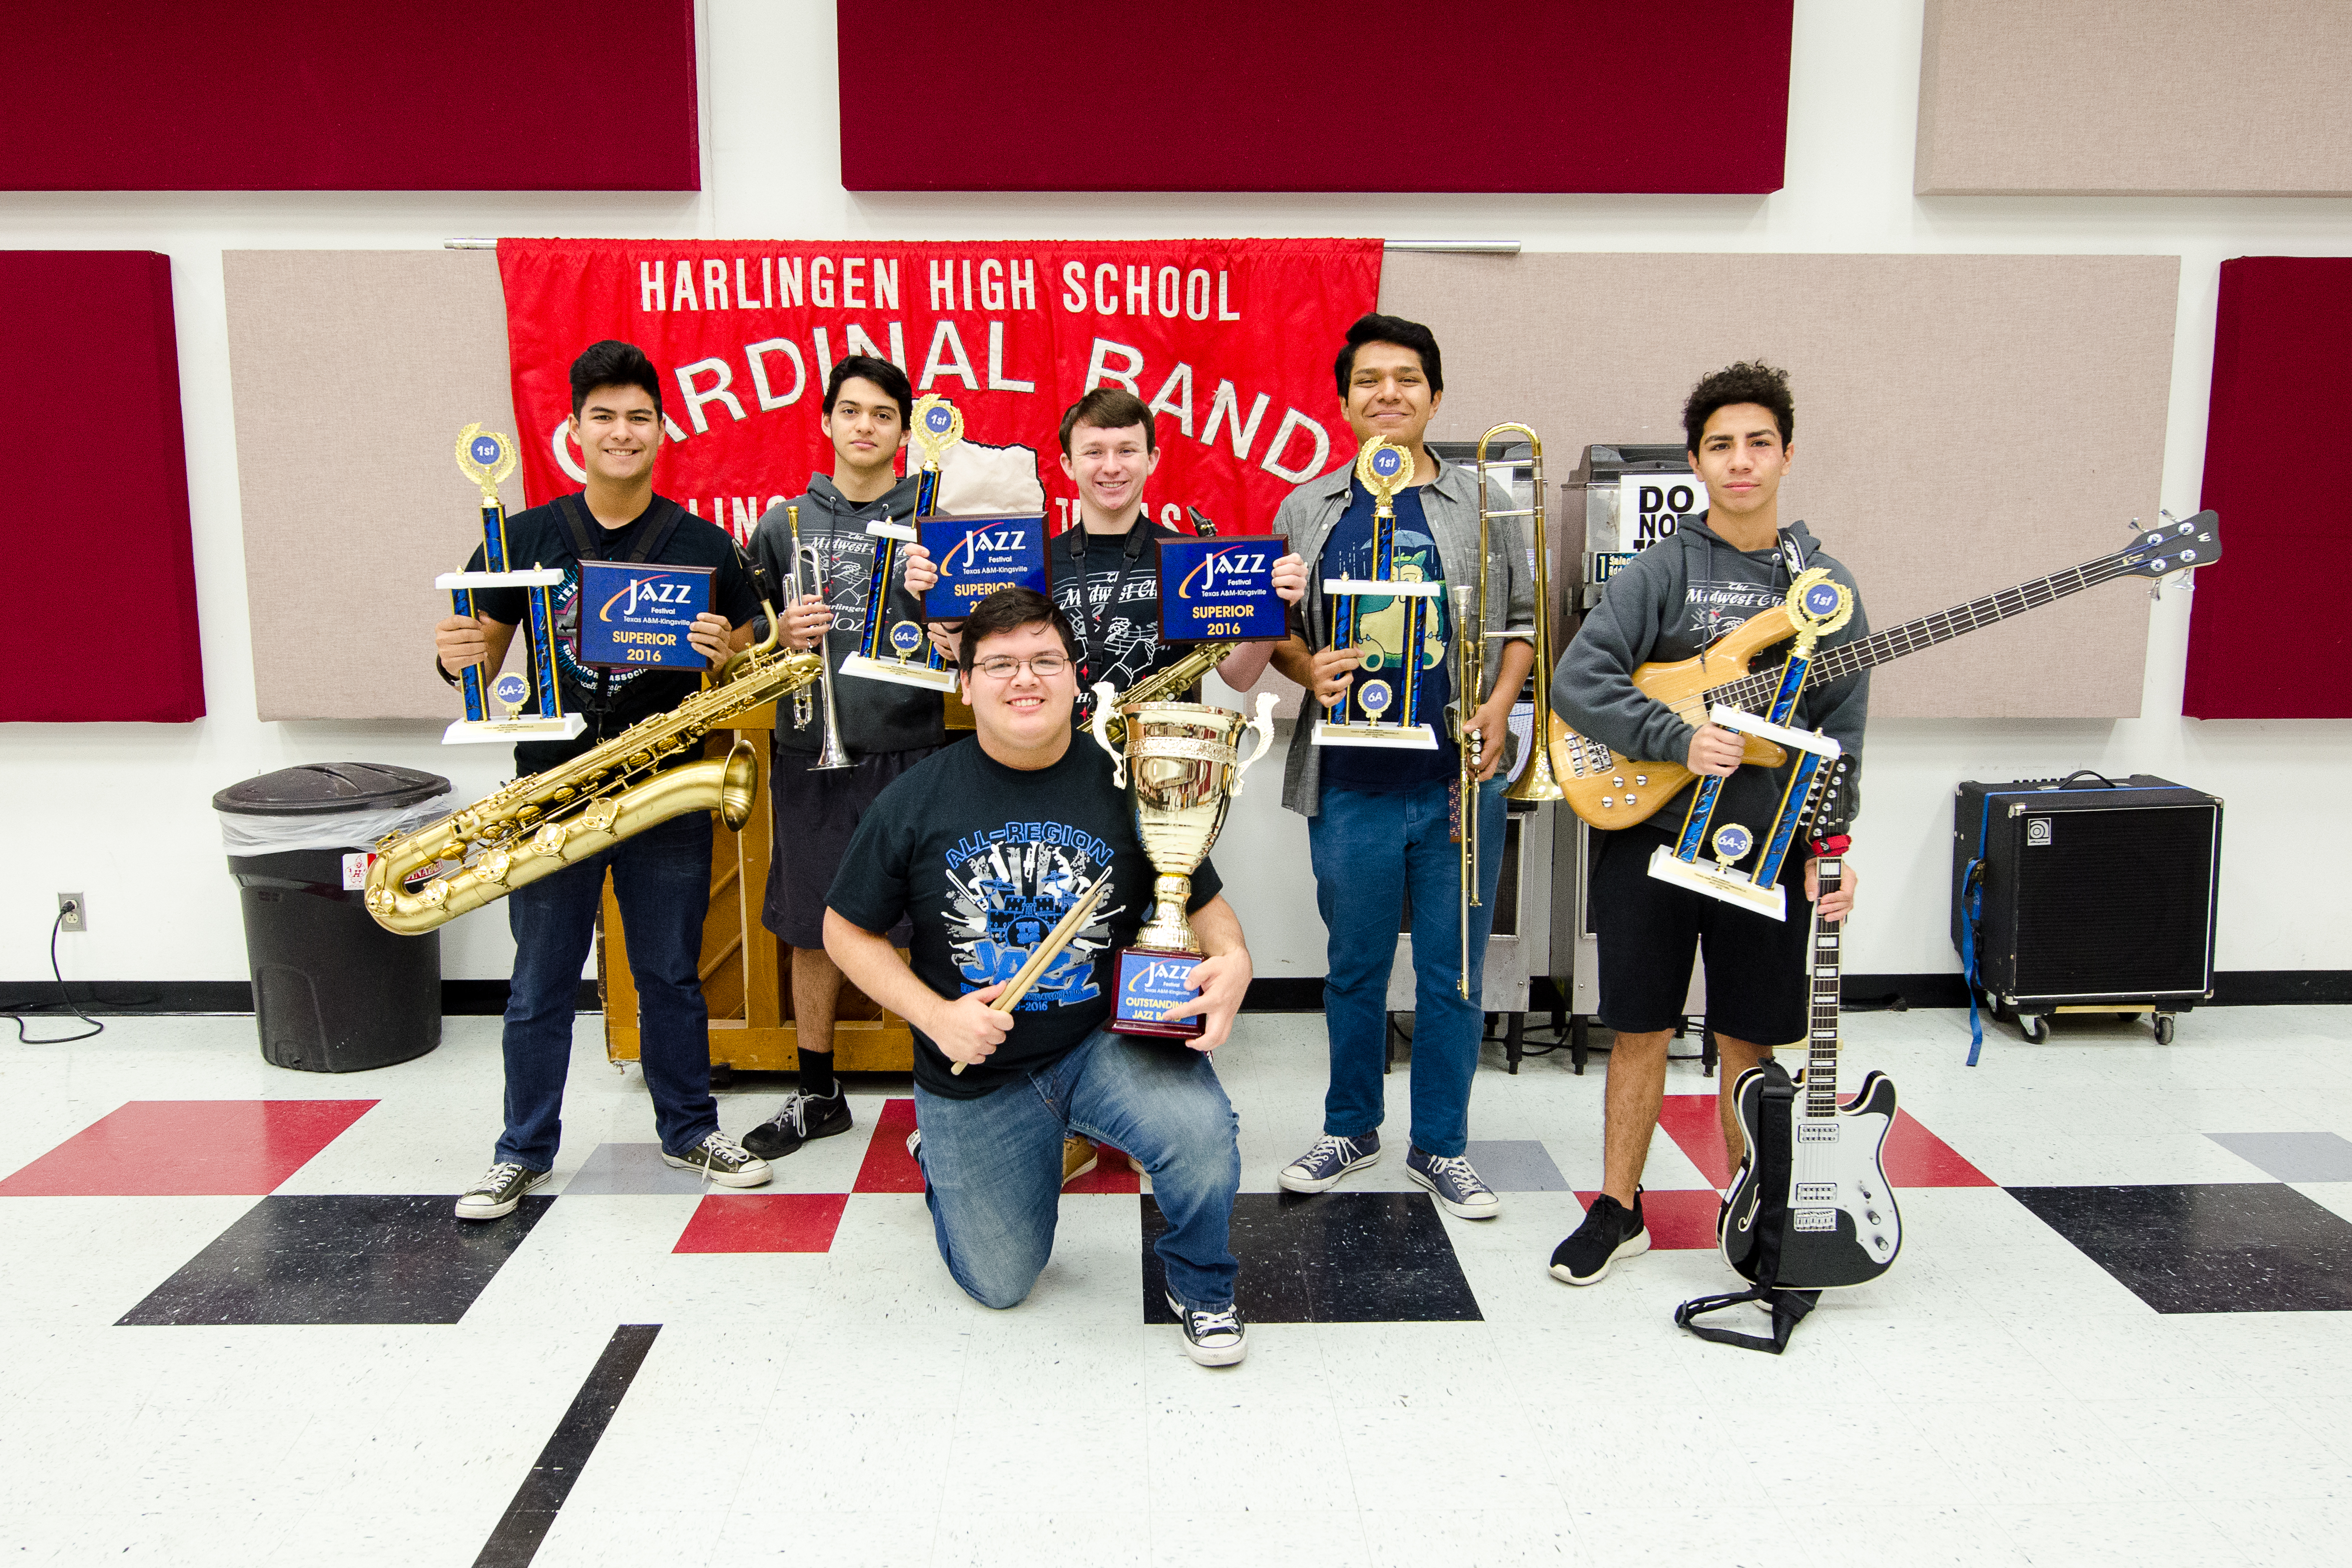 HS Jazz Bands take top honors at 49th Annual TAMUK Jazz Festival